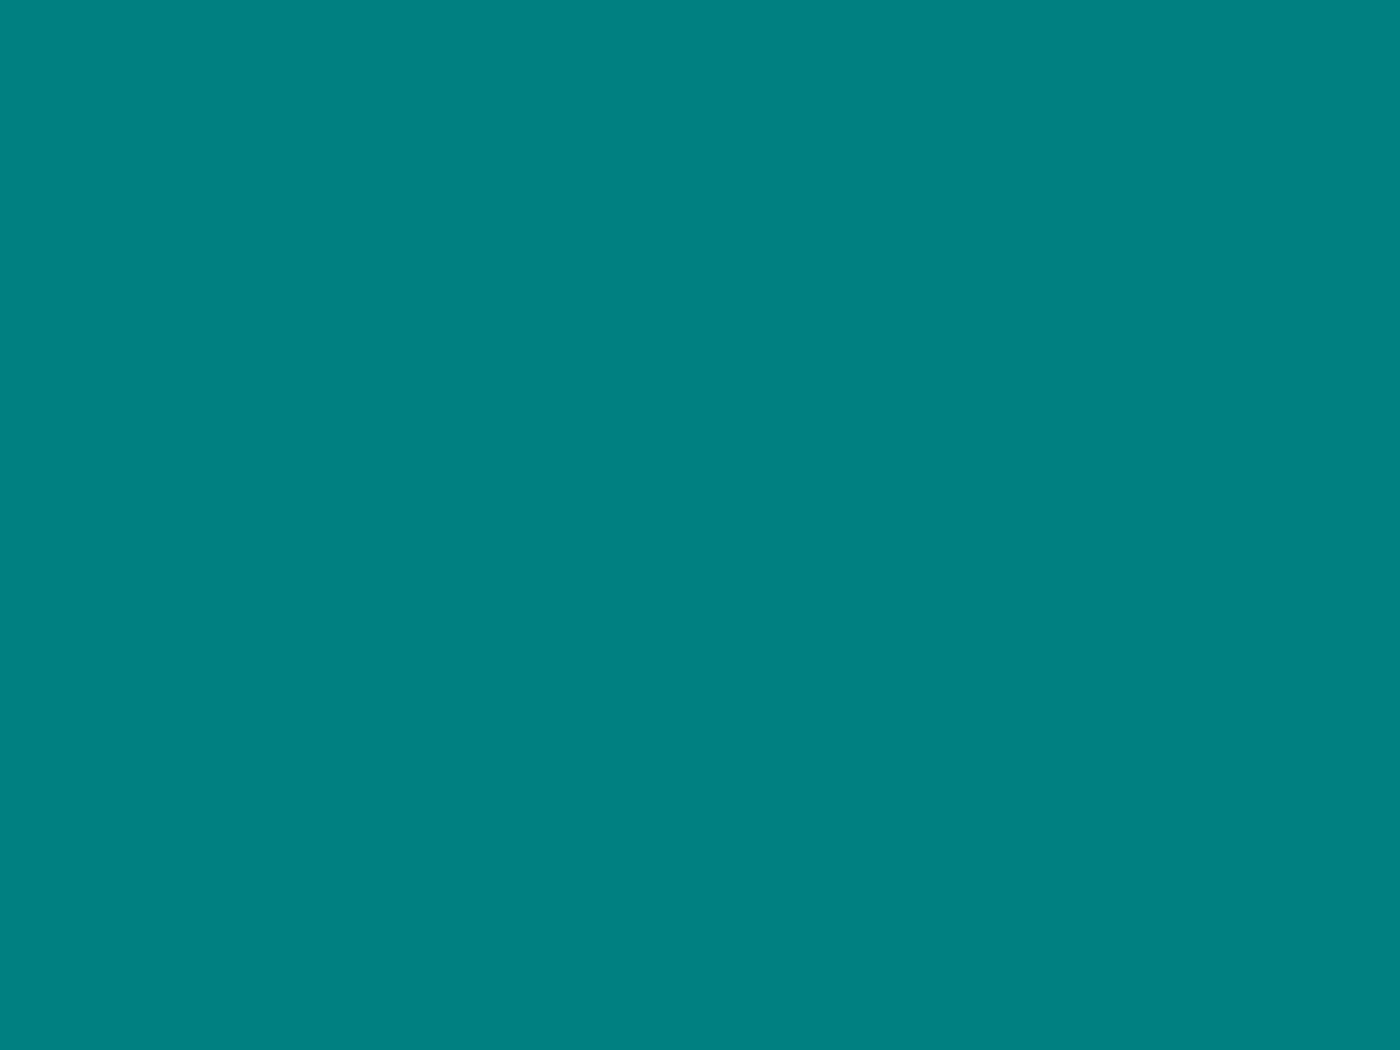 1400x1050 Teal Solid Color Background